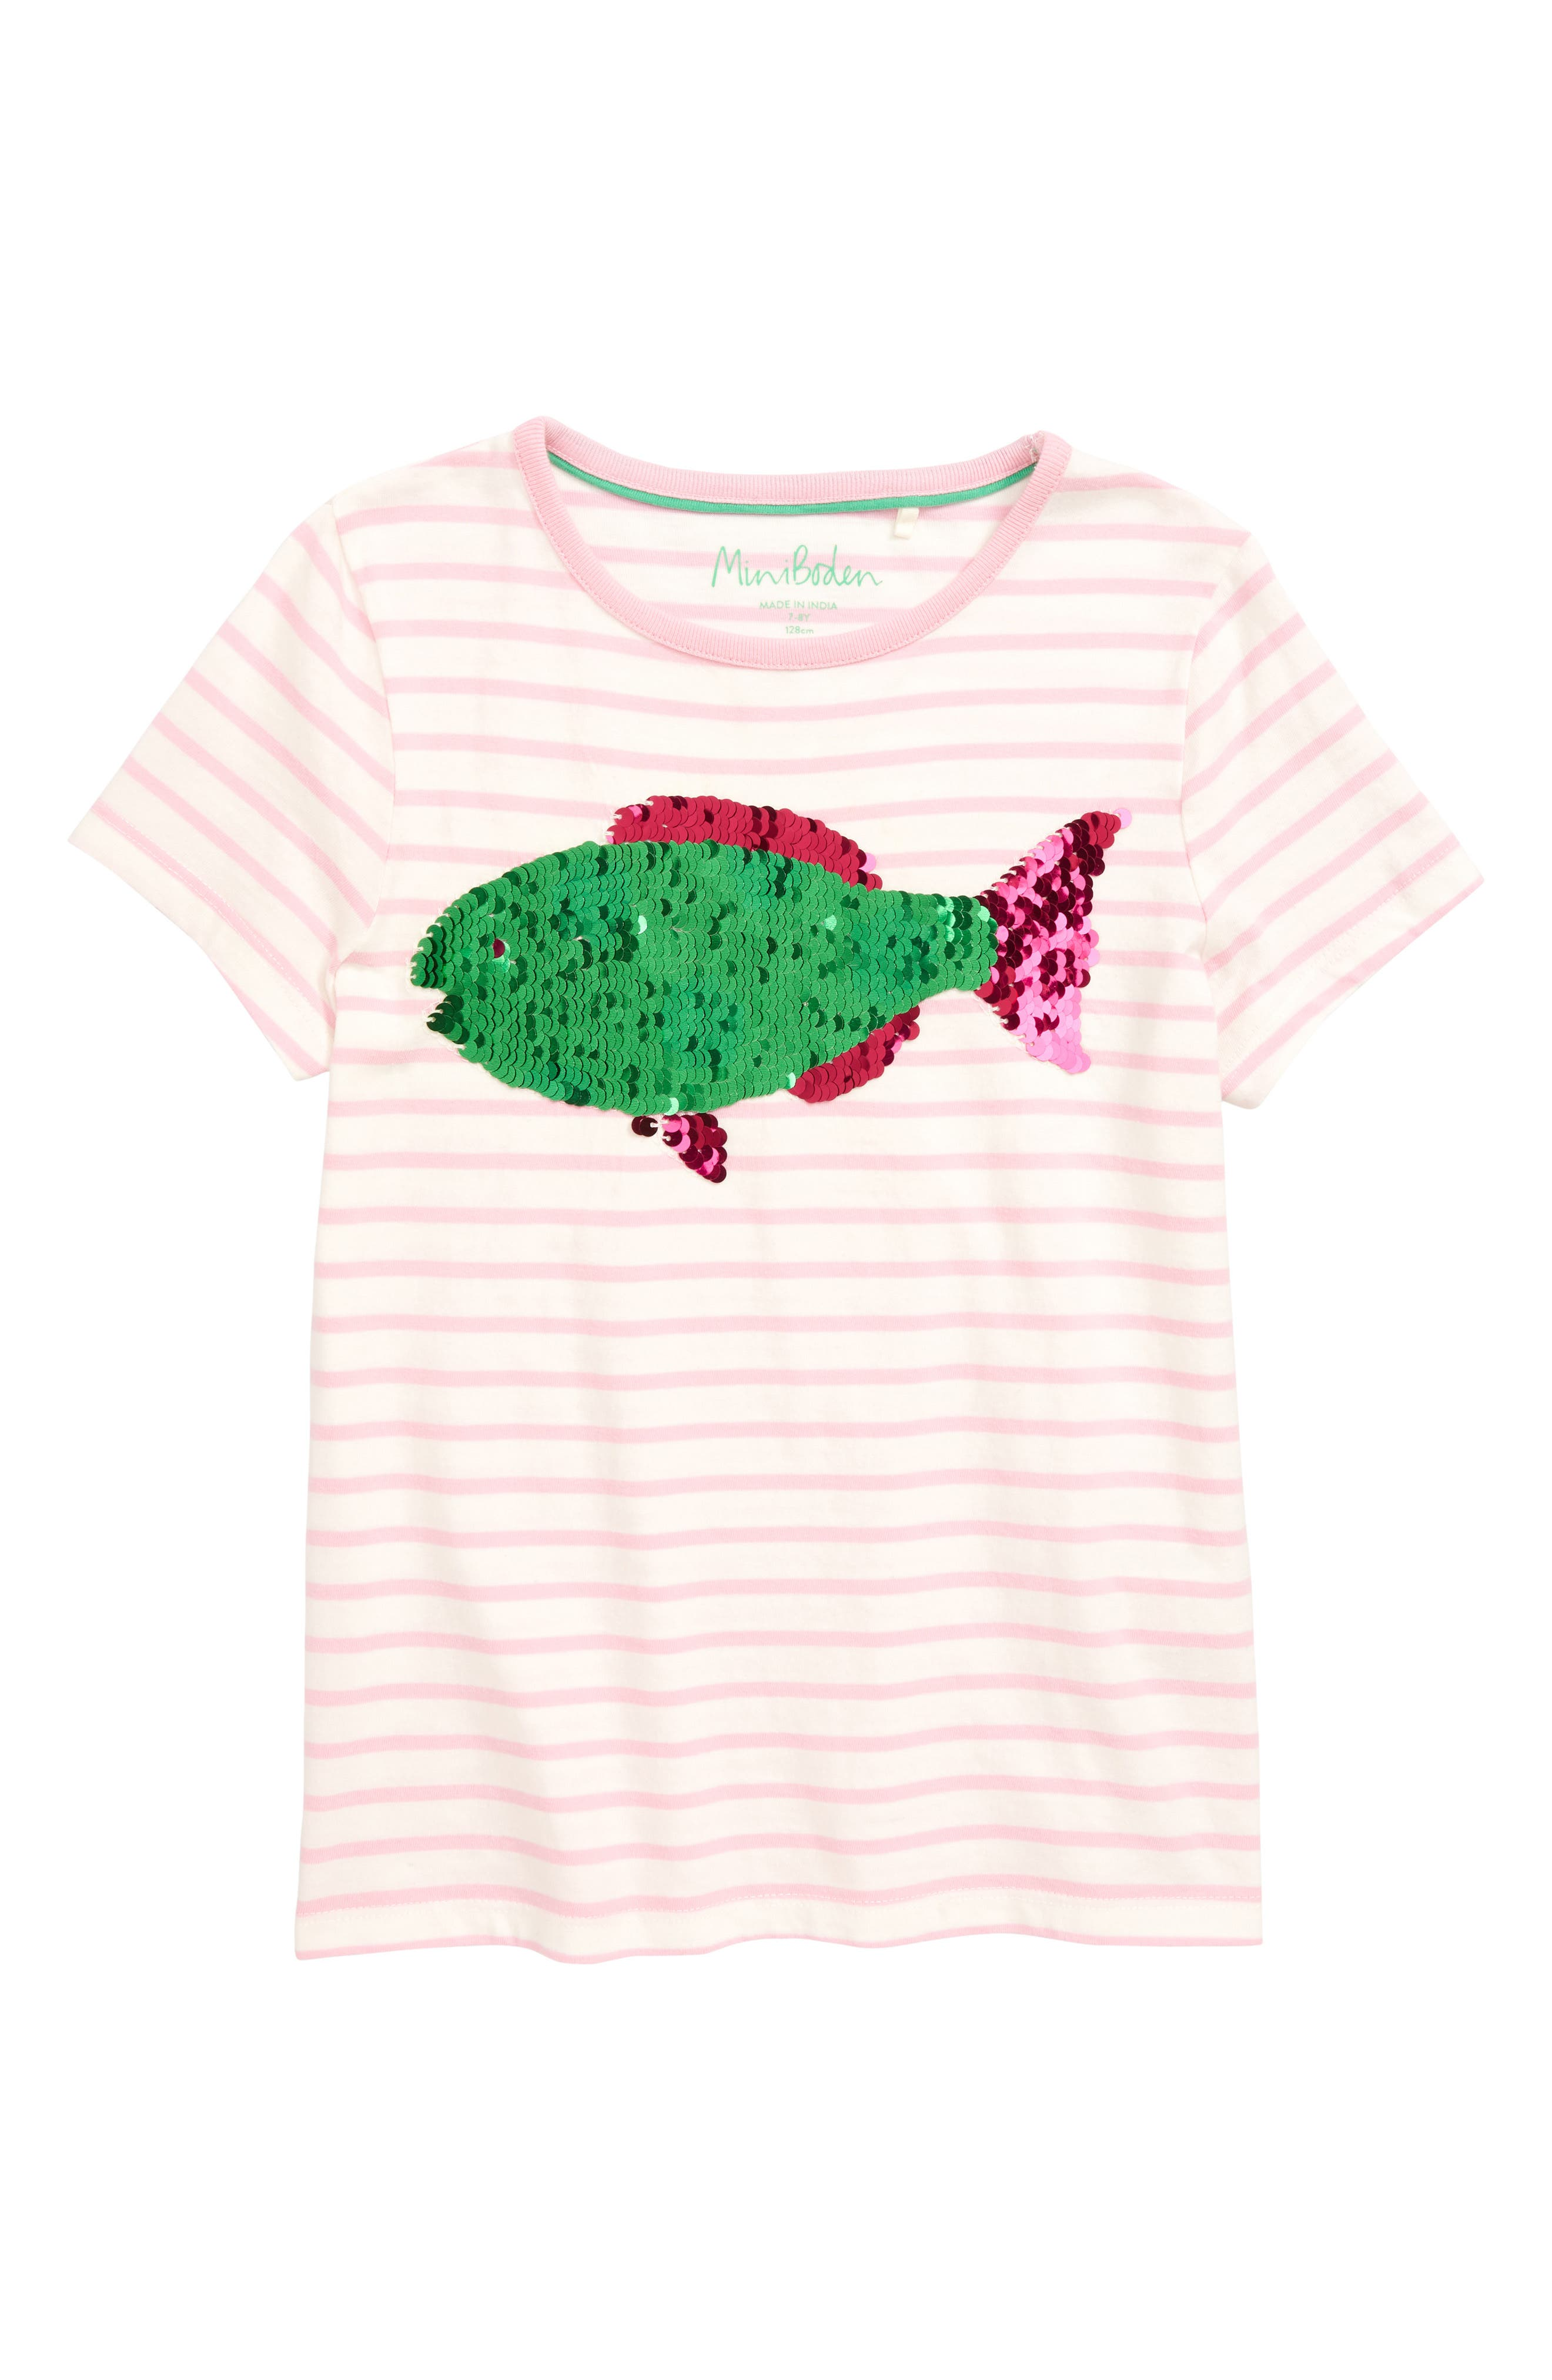 Sunny Color Change Tee,                         Main,                         color, 664